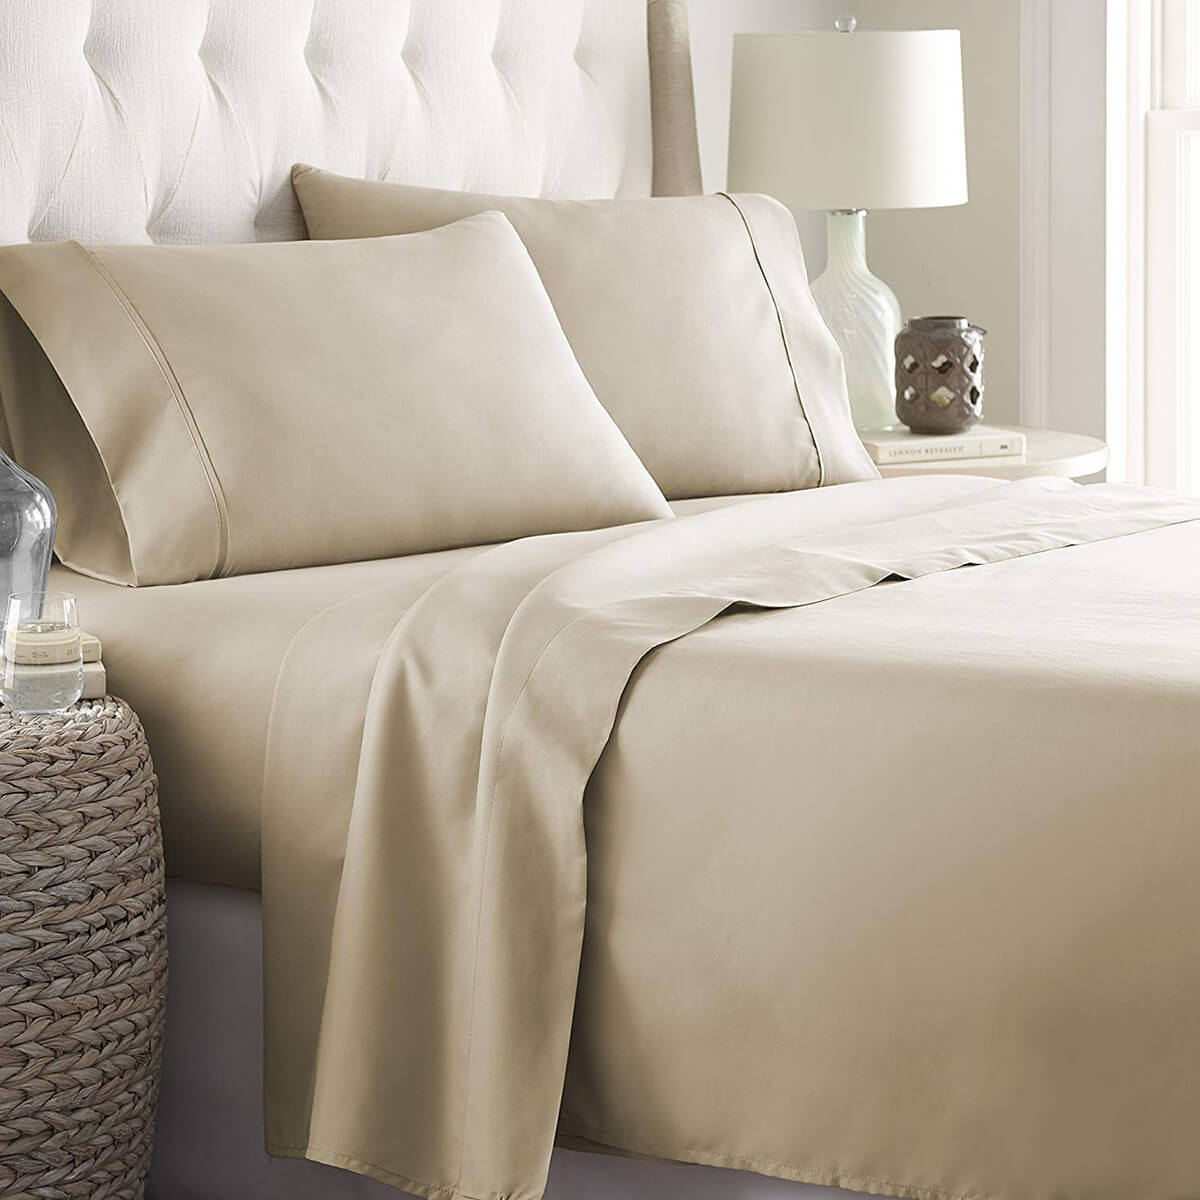 Hotel Luxury Bed Sheets Platinum Collection